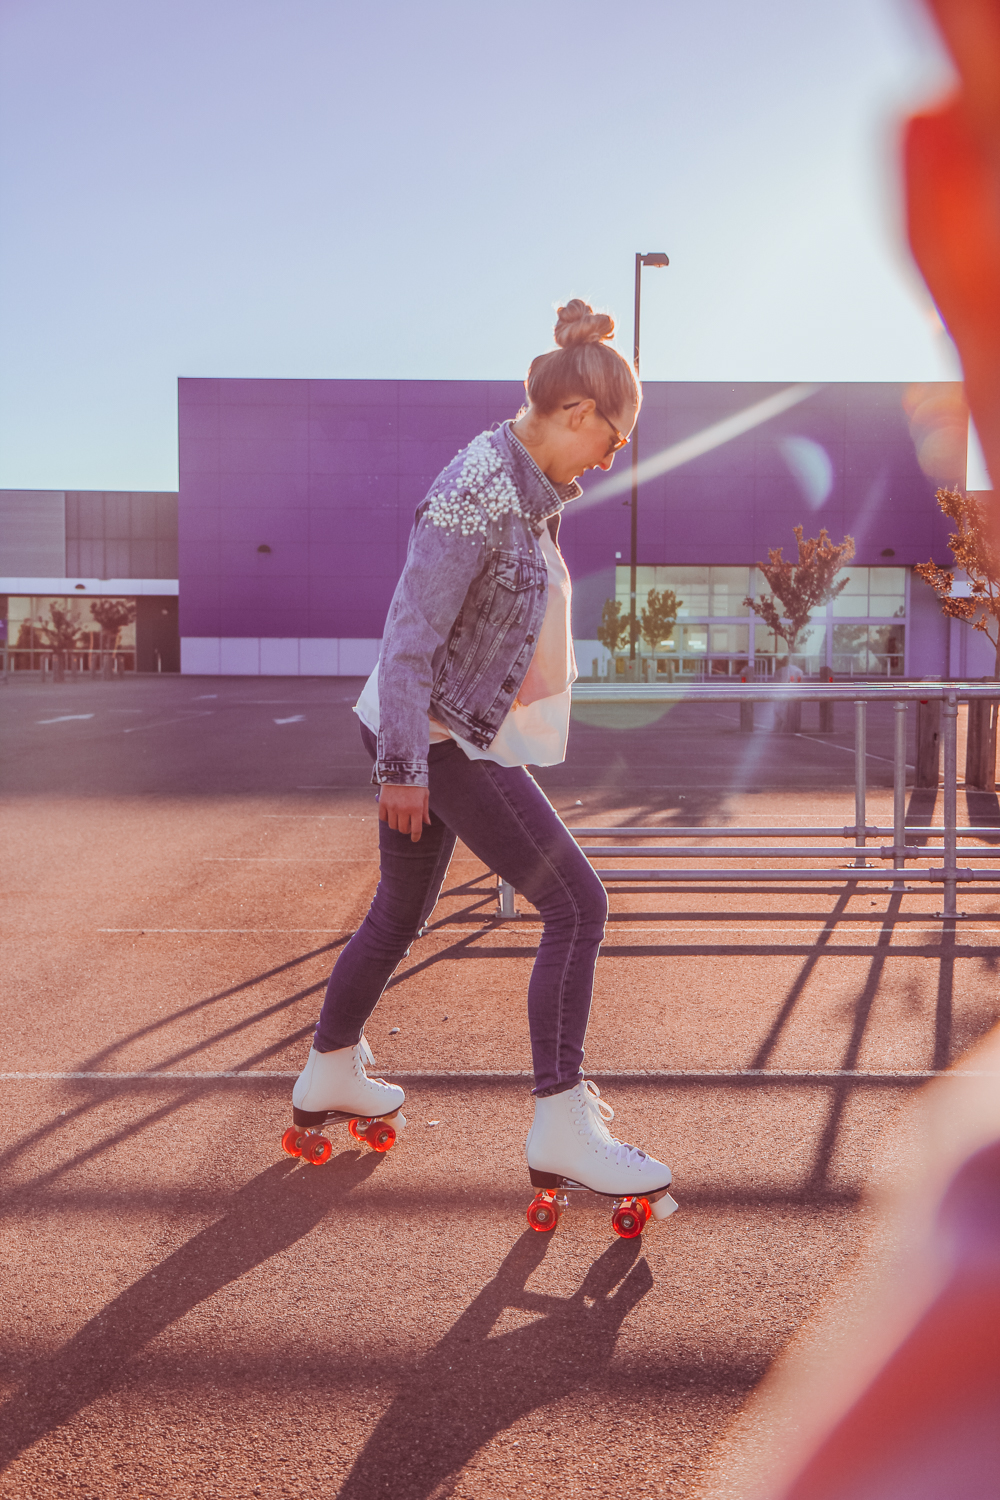 From @findingfemme | Goldfields Girl rollerskating